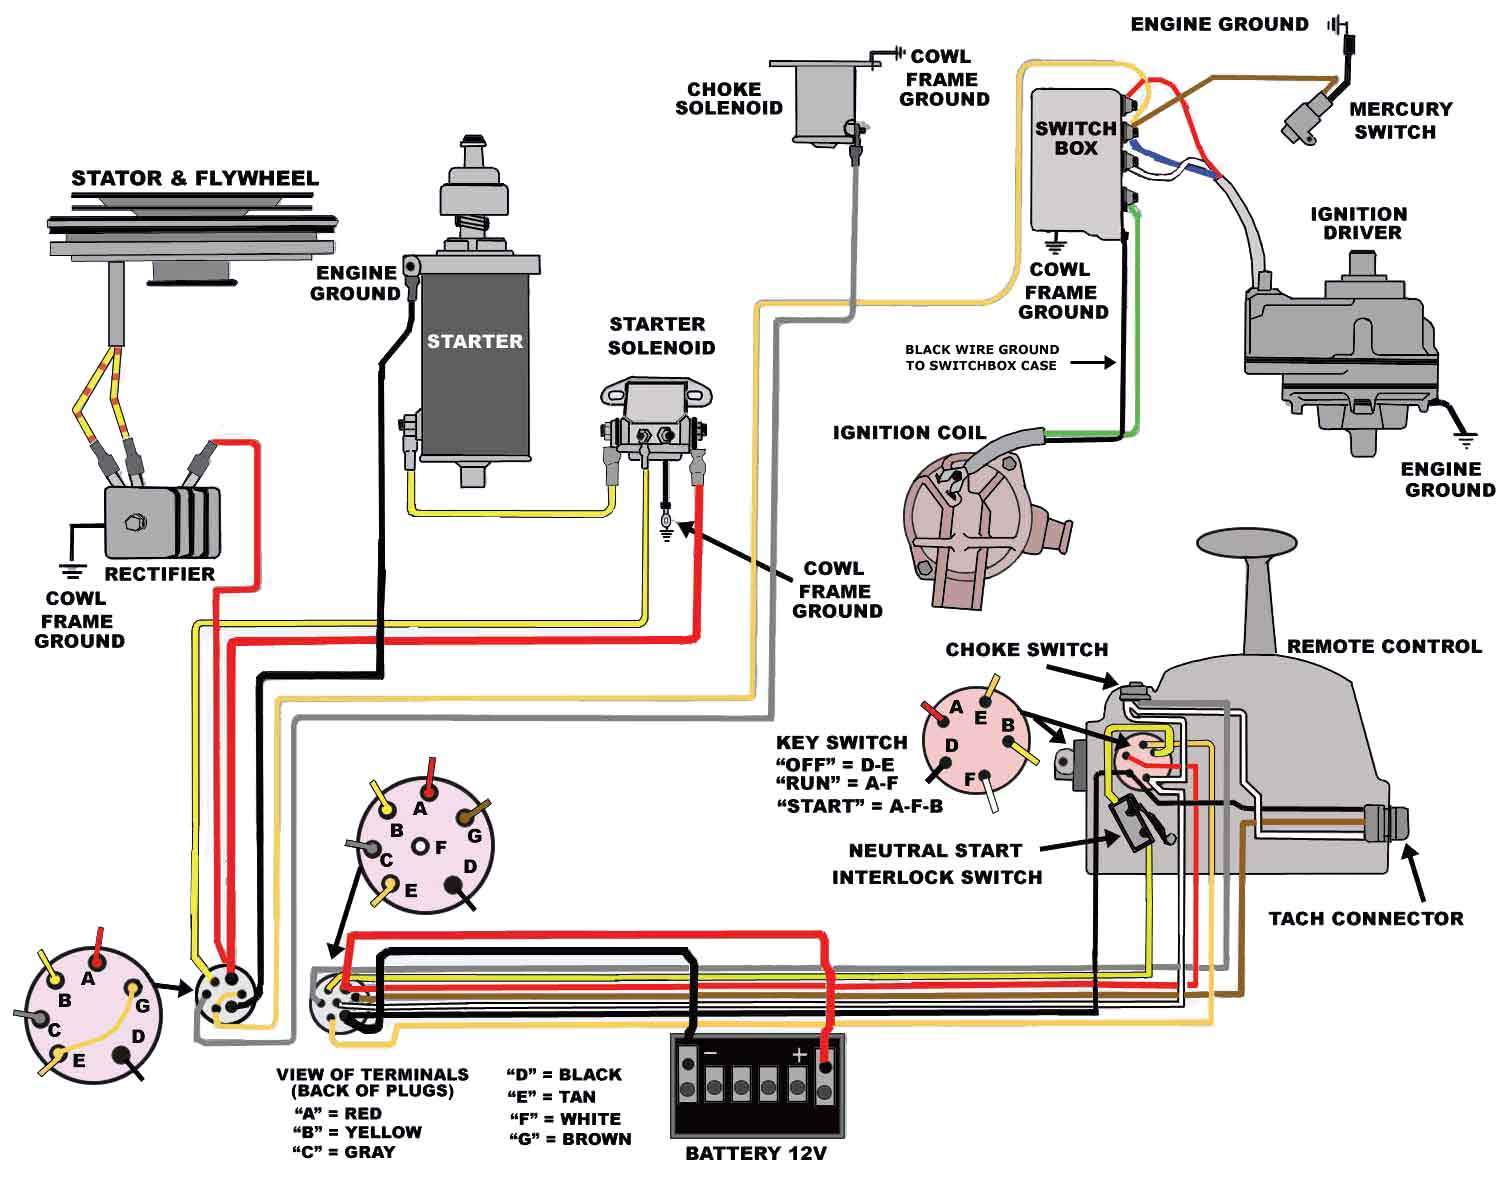 Mercury 225 Optimax Wiring Diagram: Mercury Outboard Wiring Diagrams u2014  Mastertech Marin u2013 readingrat.